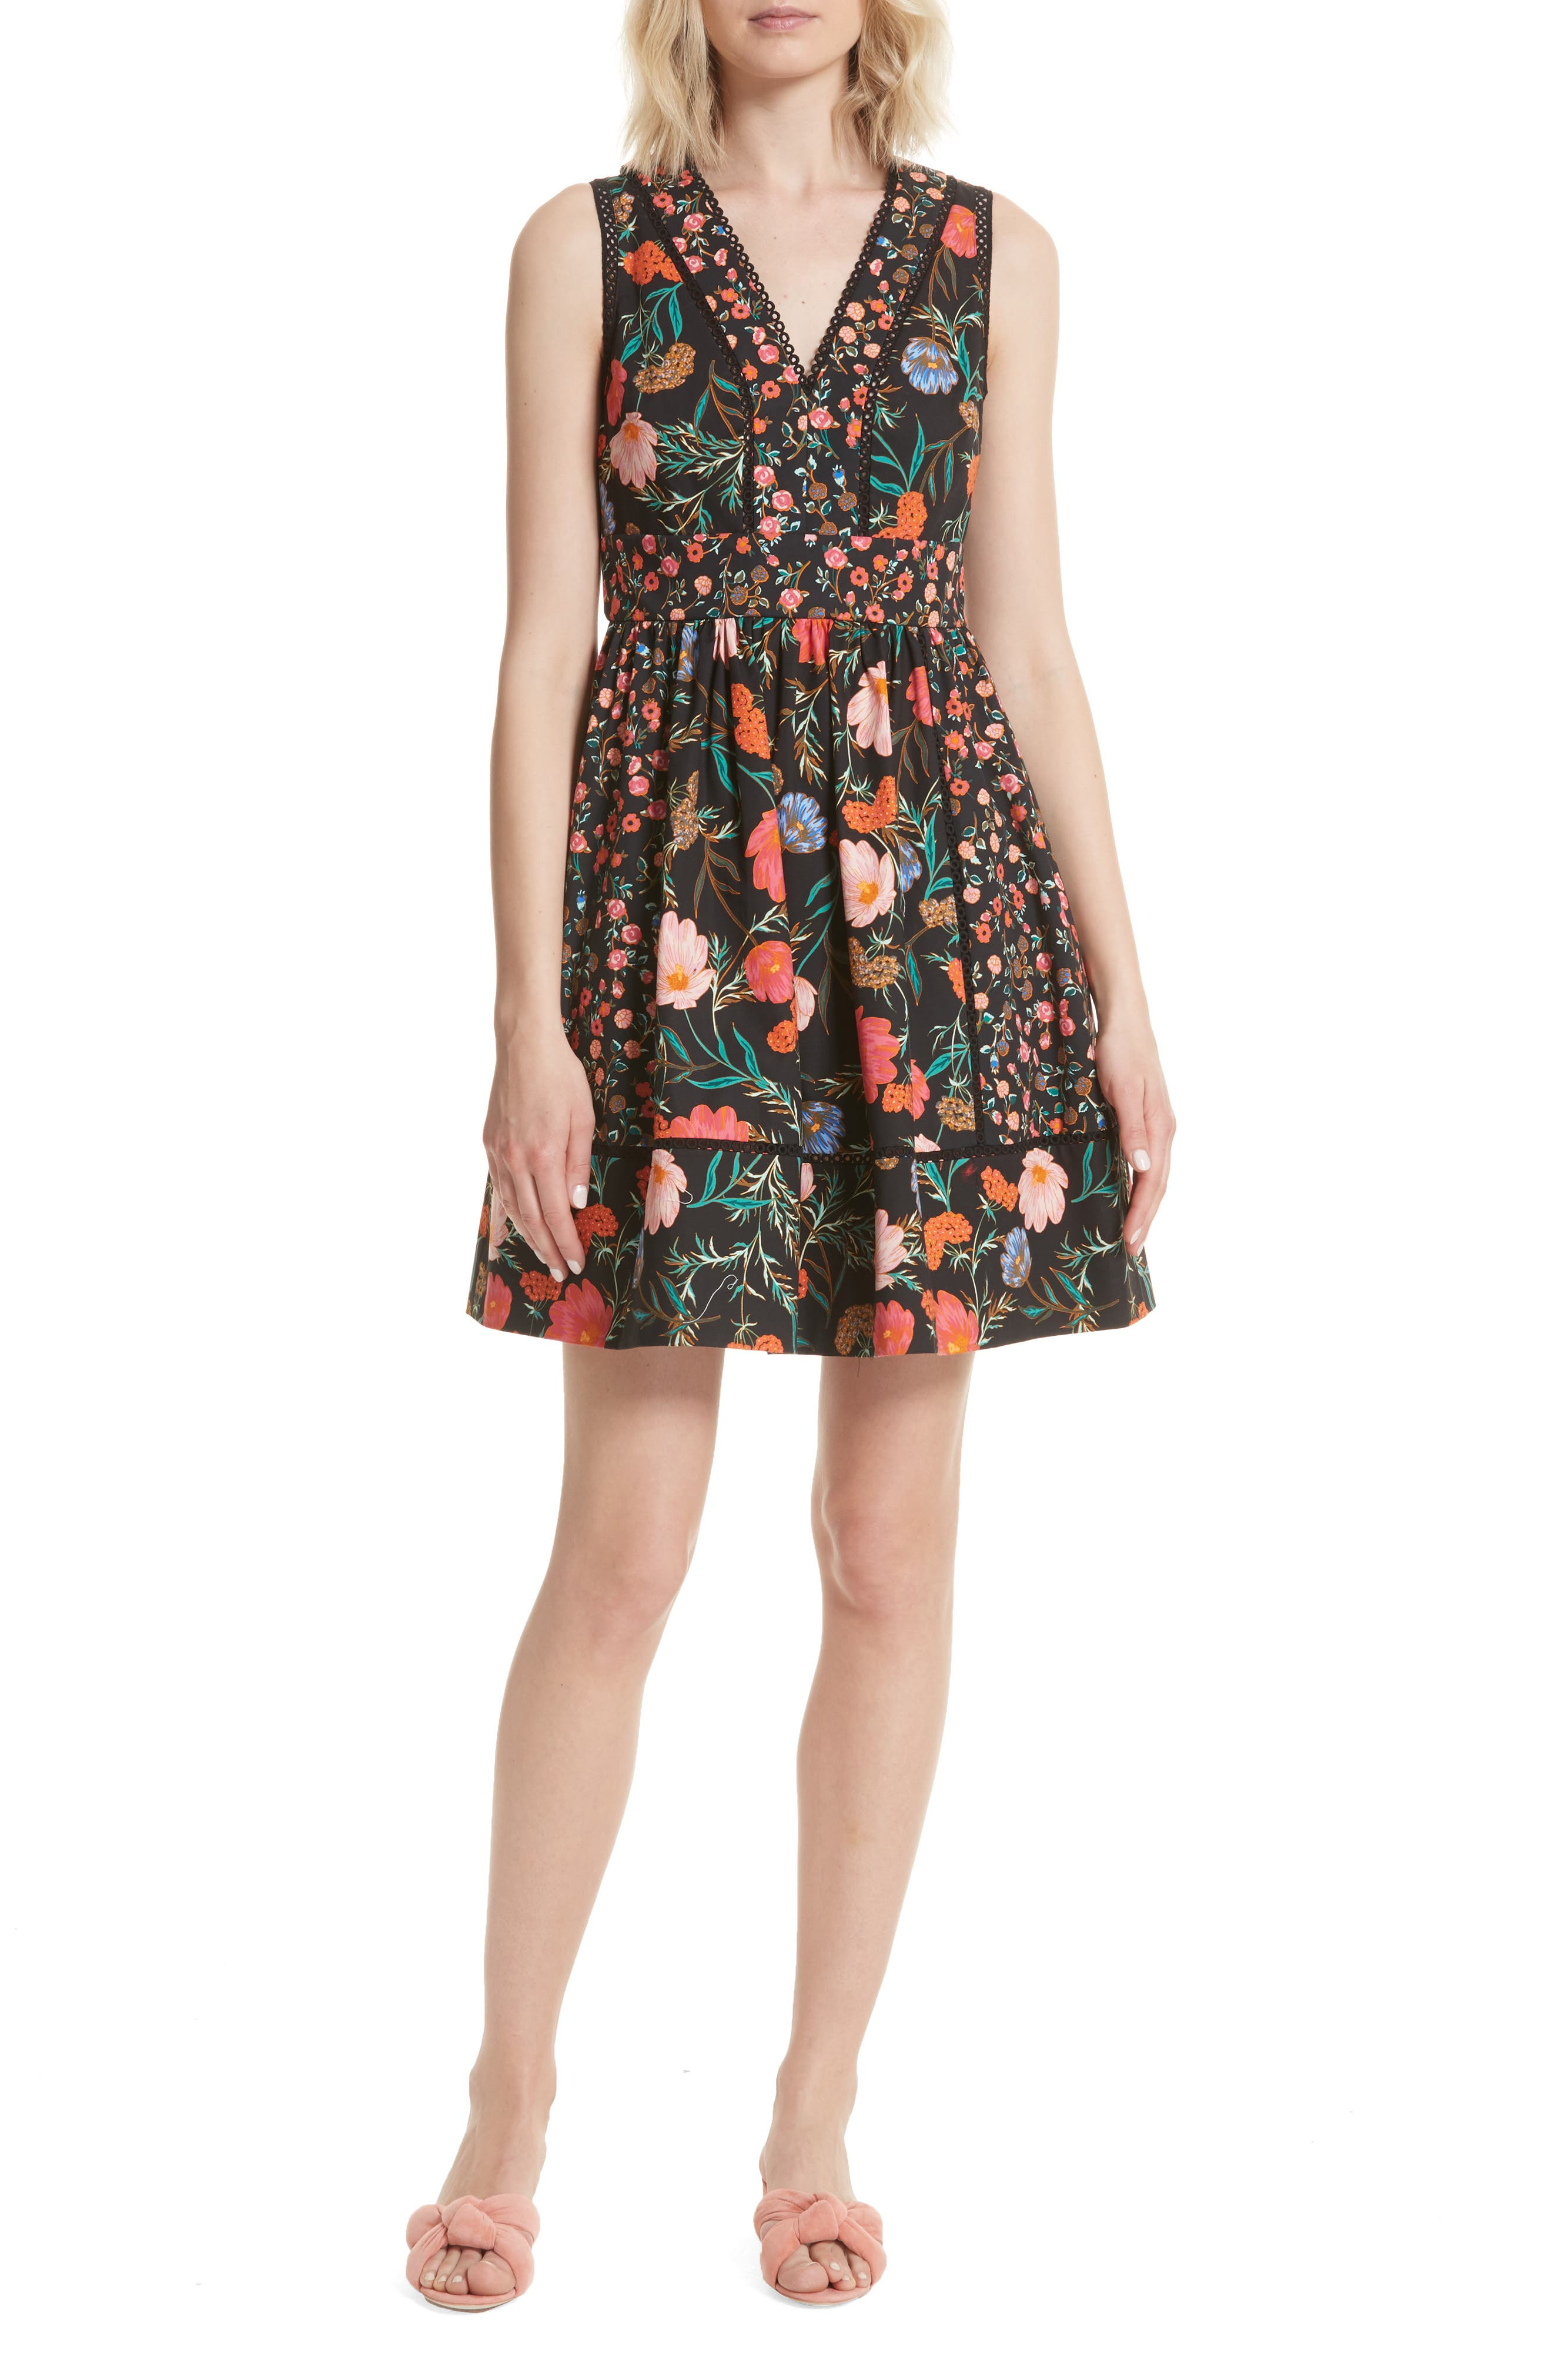 blossom sleeveless fit & flare dress,                             Main thumbnail 1, color,                             001